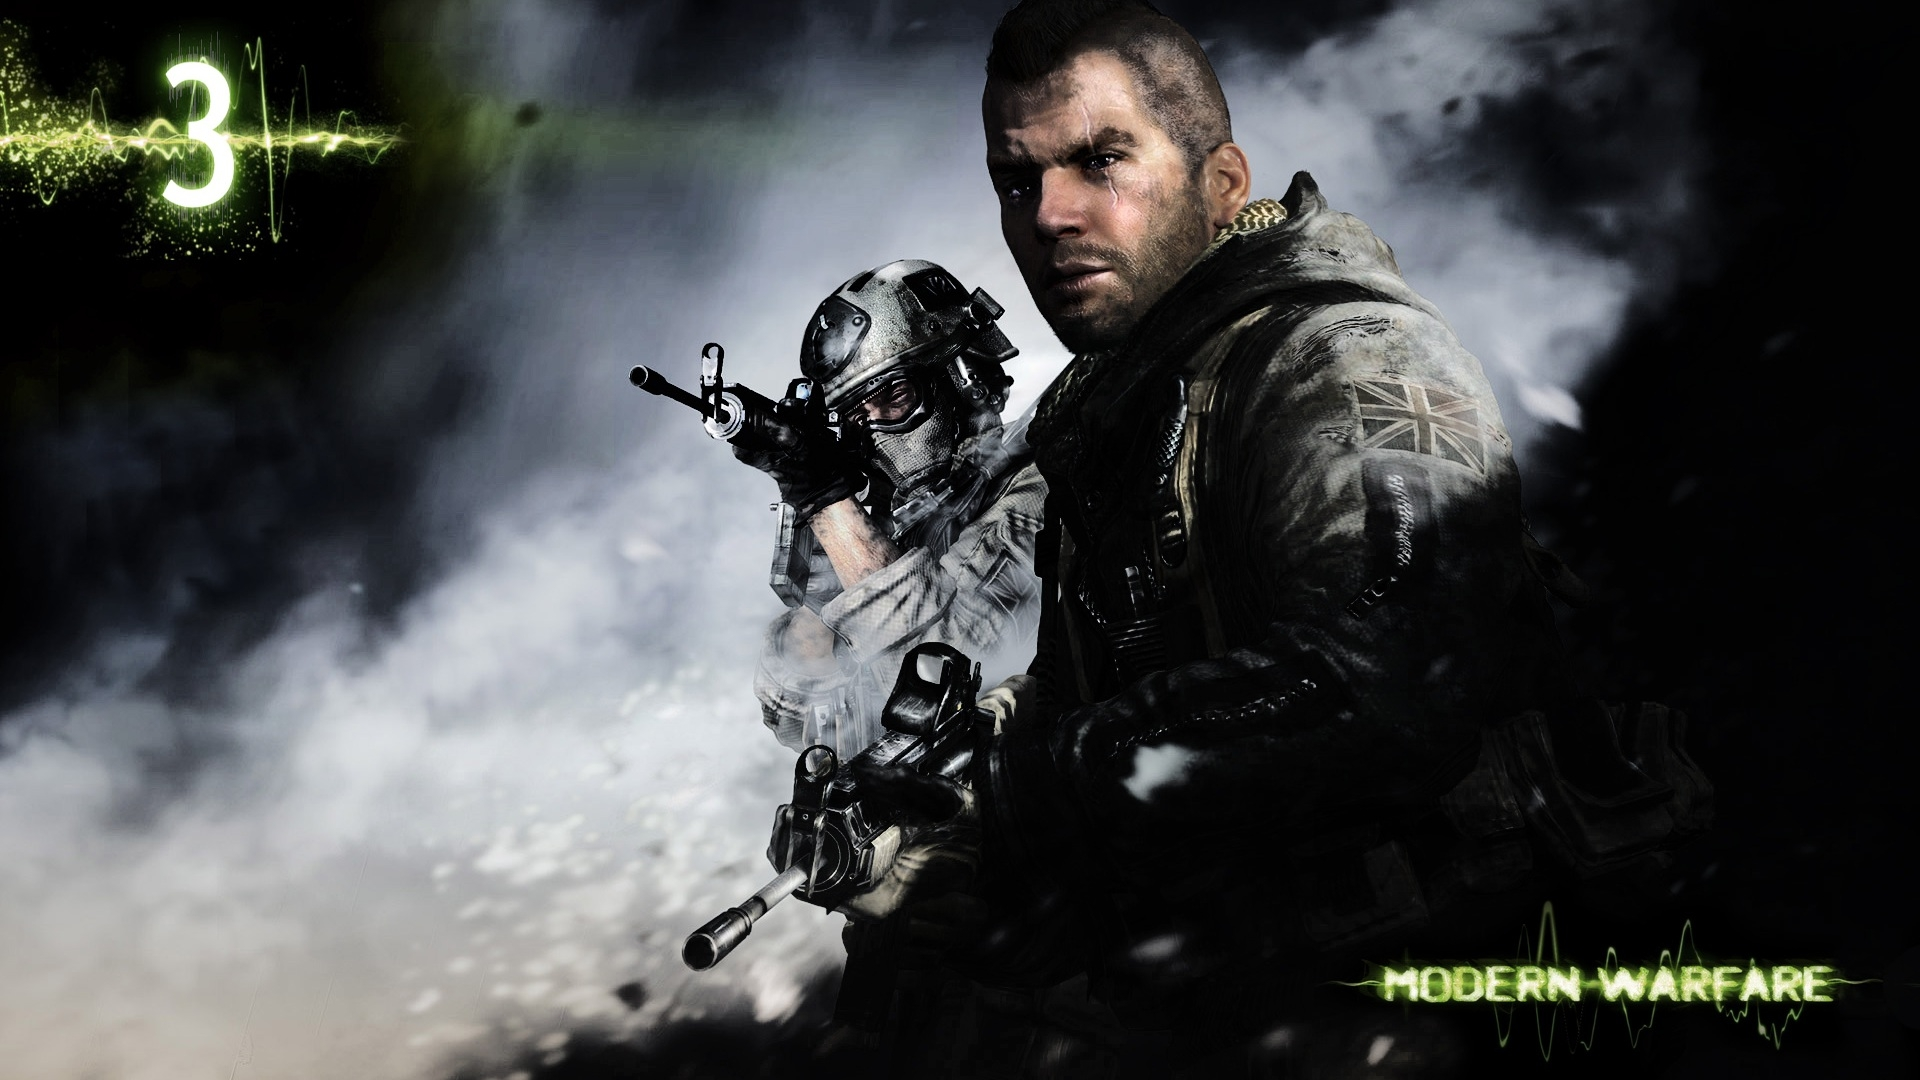 1366x768 Call Of Duty Modern Warfare 3 Soldiers Scar 1366x768 Resolution Wallpaper Hd Games 4k Wallpapers Images Photos And Background